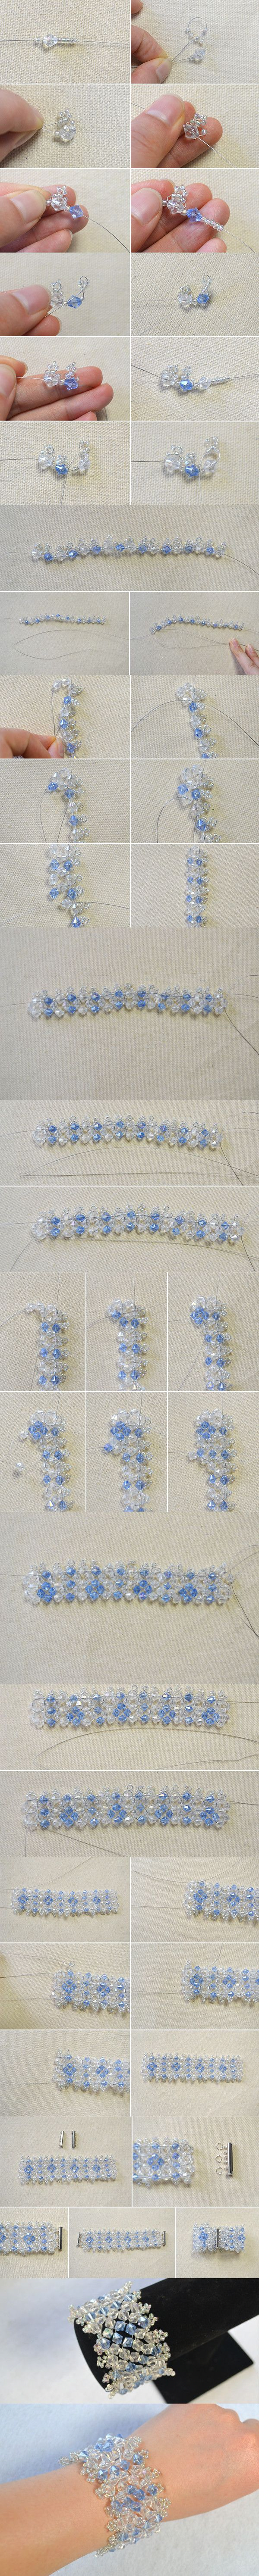 Beaded Bracelet Tutorial-How Do You Make a Crystal Beaded Bracelet from LC.Pandahall.com #pandahall